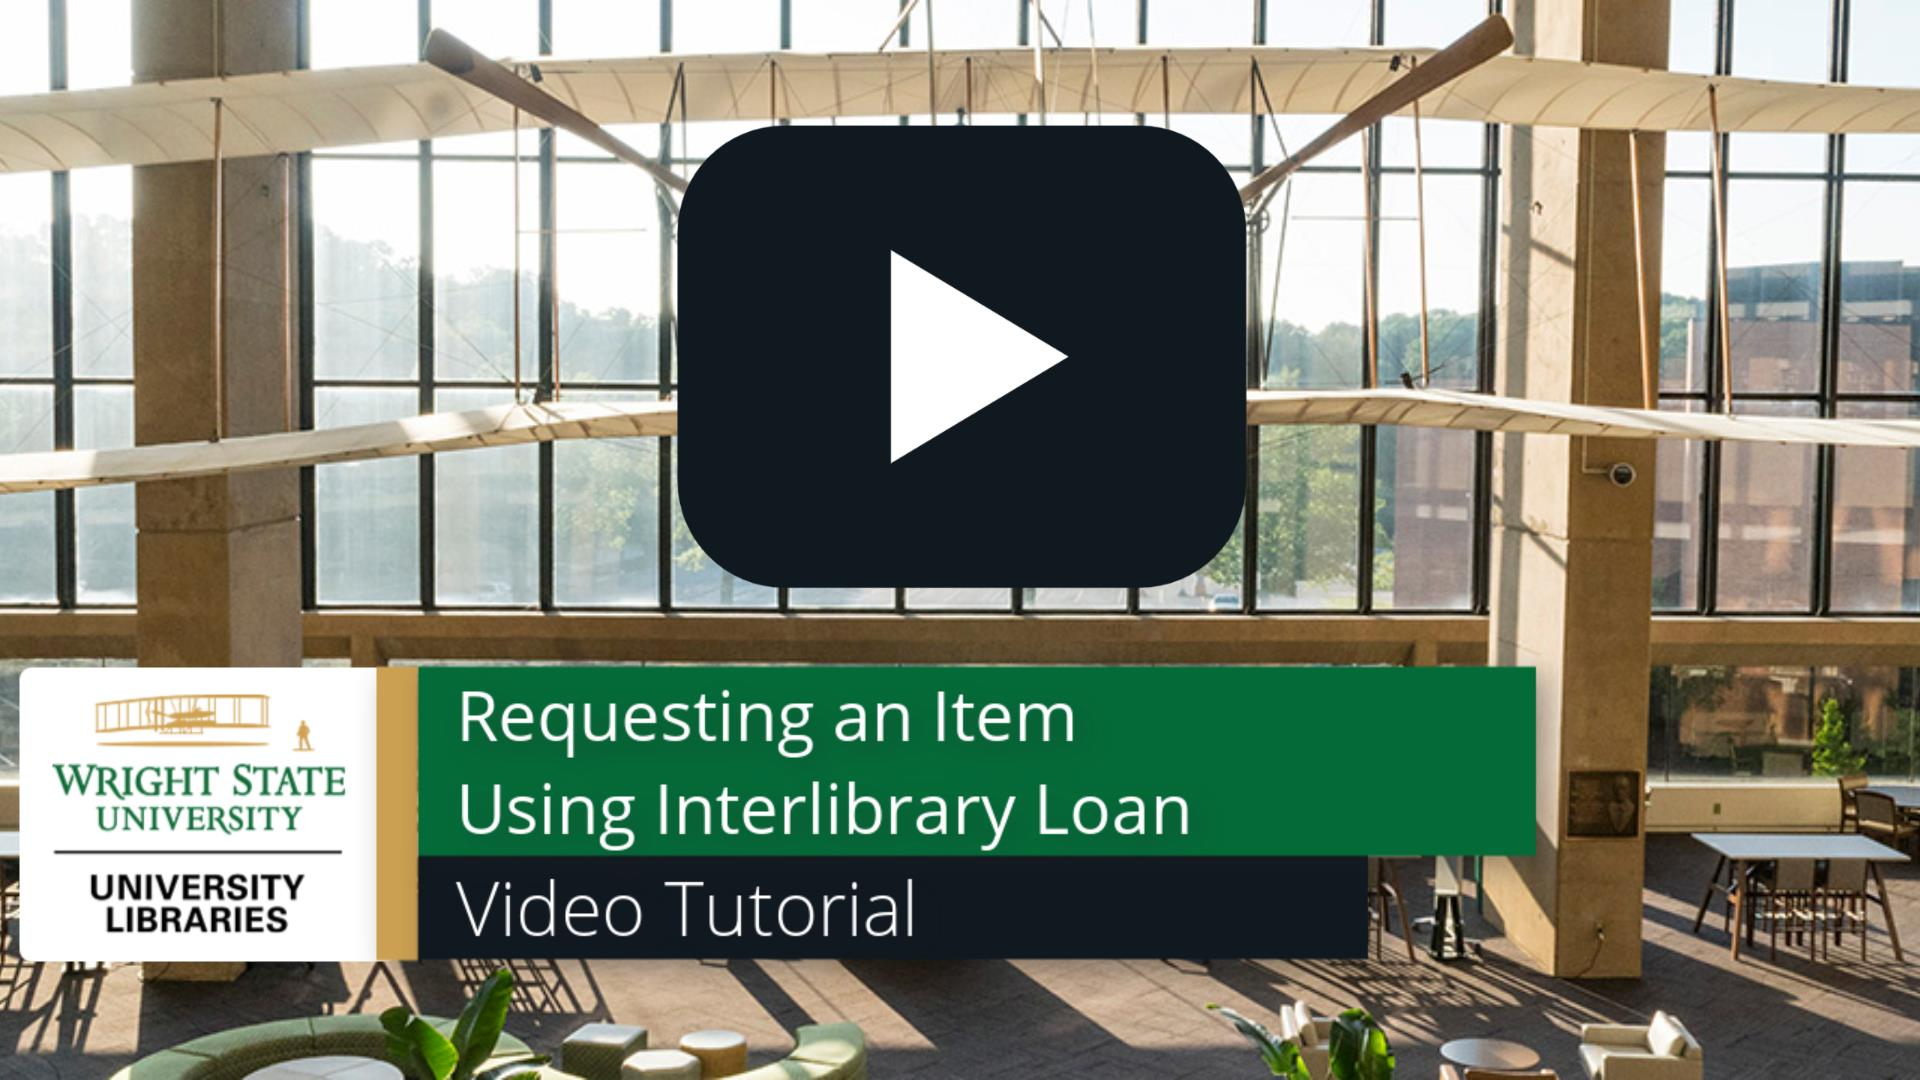 Requesting an Item Using Interlibrary Loan Video Tutorial